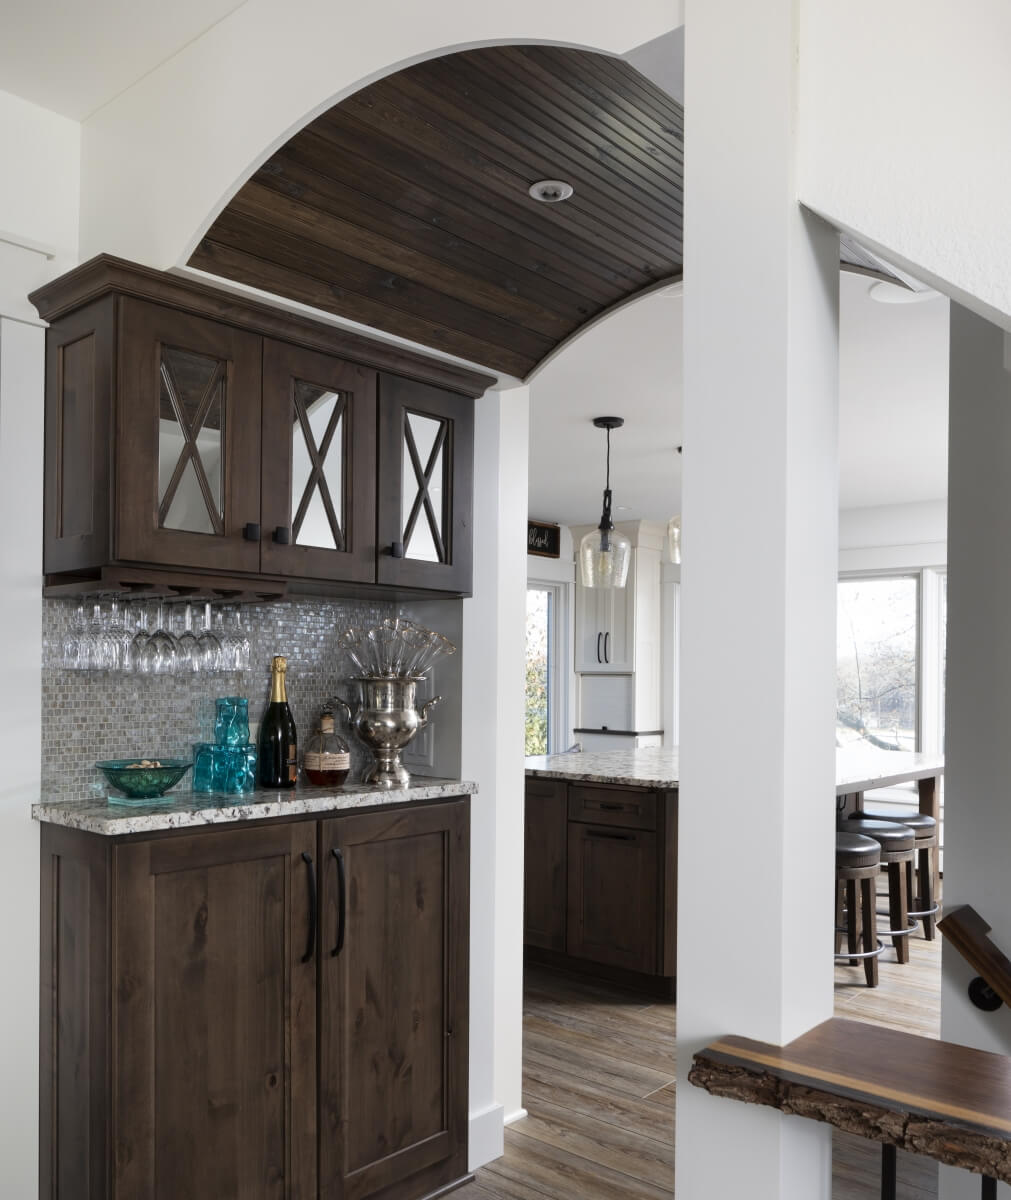 A beautiful hallway with a wet bar, mirrored cabinet inserts, and a barrel ceiling design.